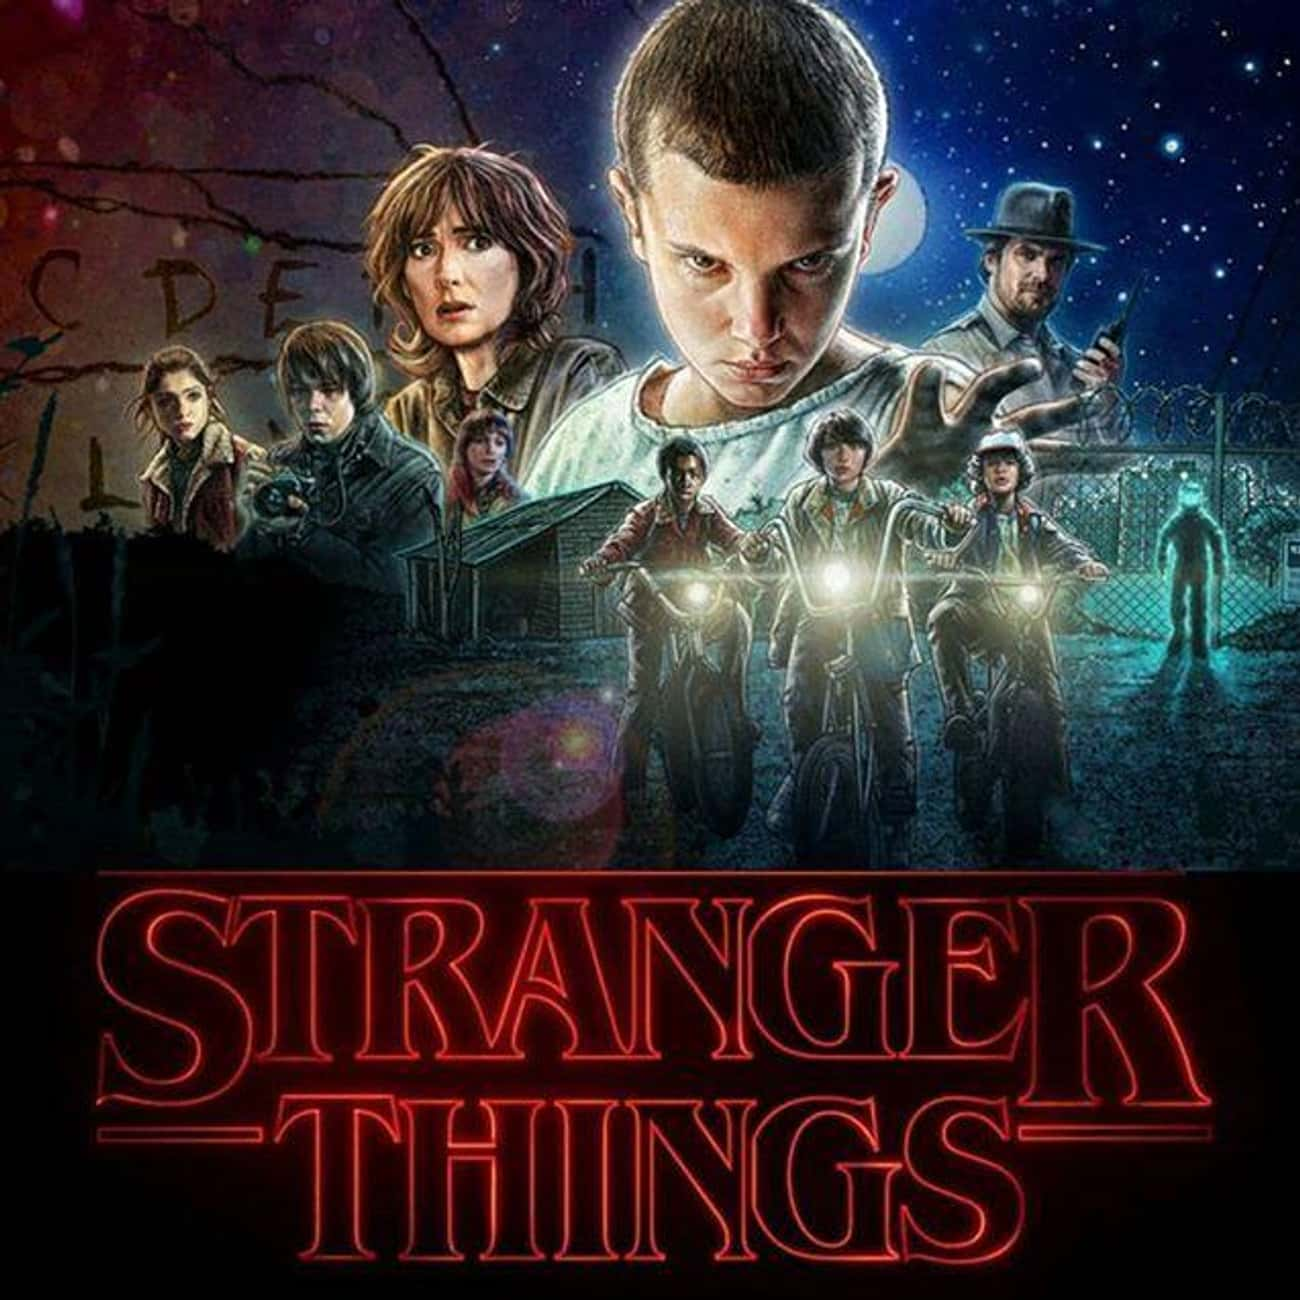 Stranger Things is listed (or ranked) 1 on the list American TV Shows That Would Make Amazing Anime Series